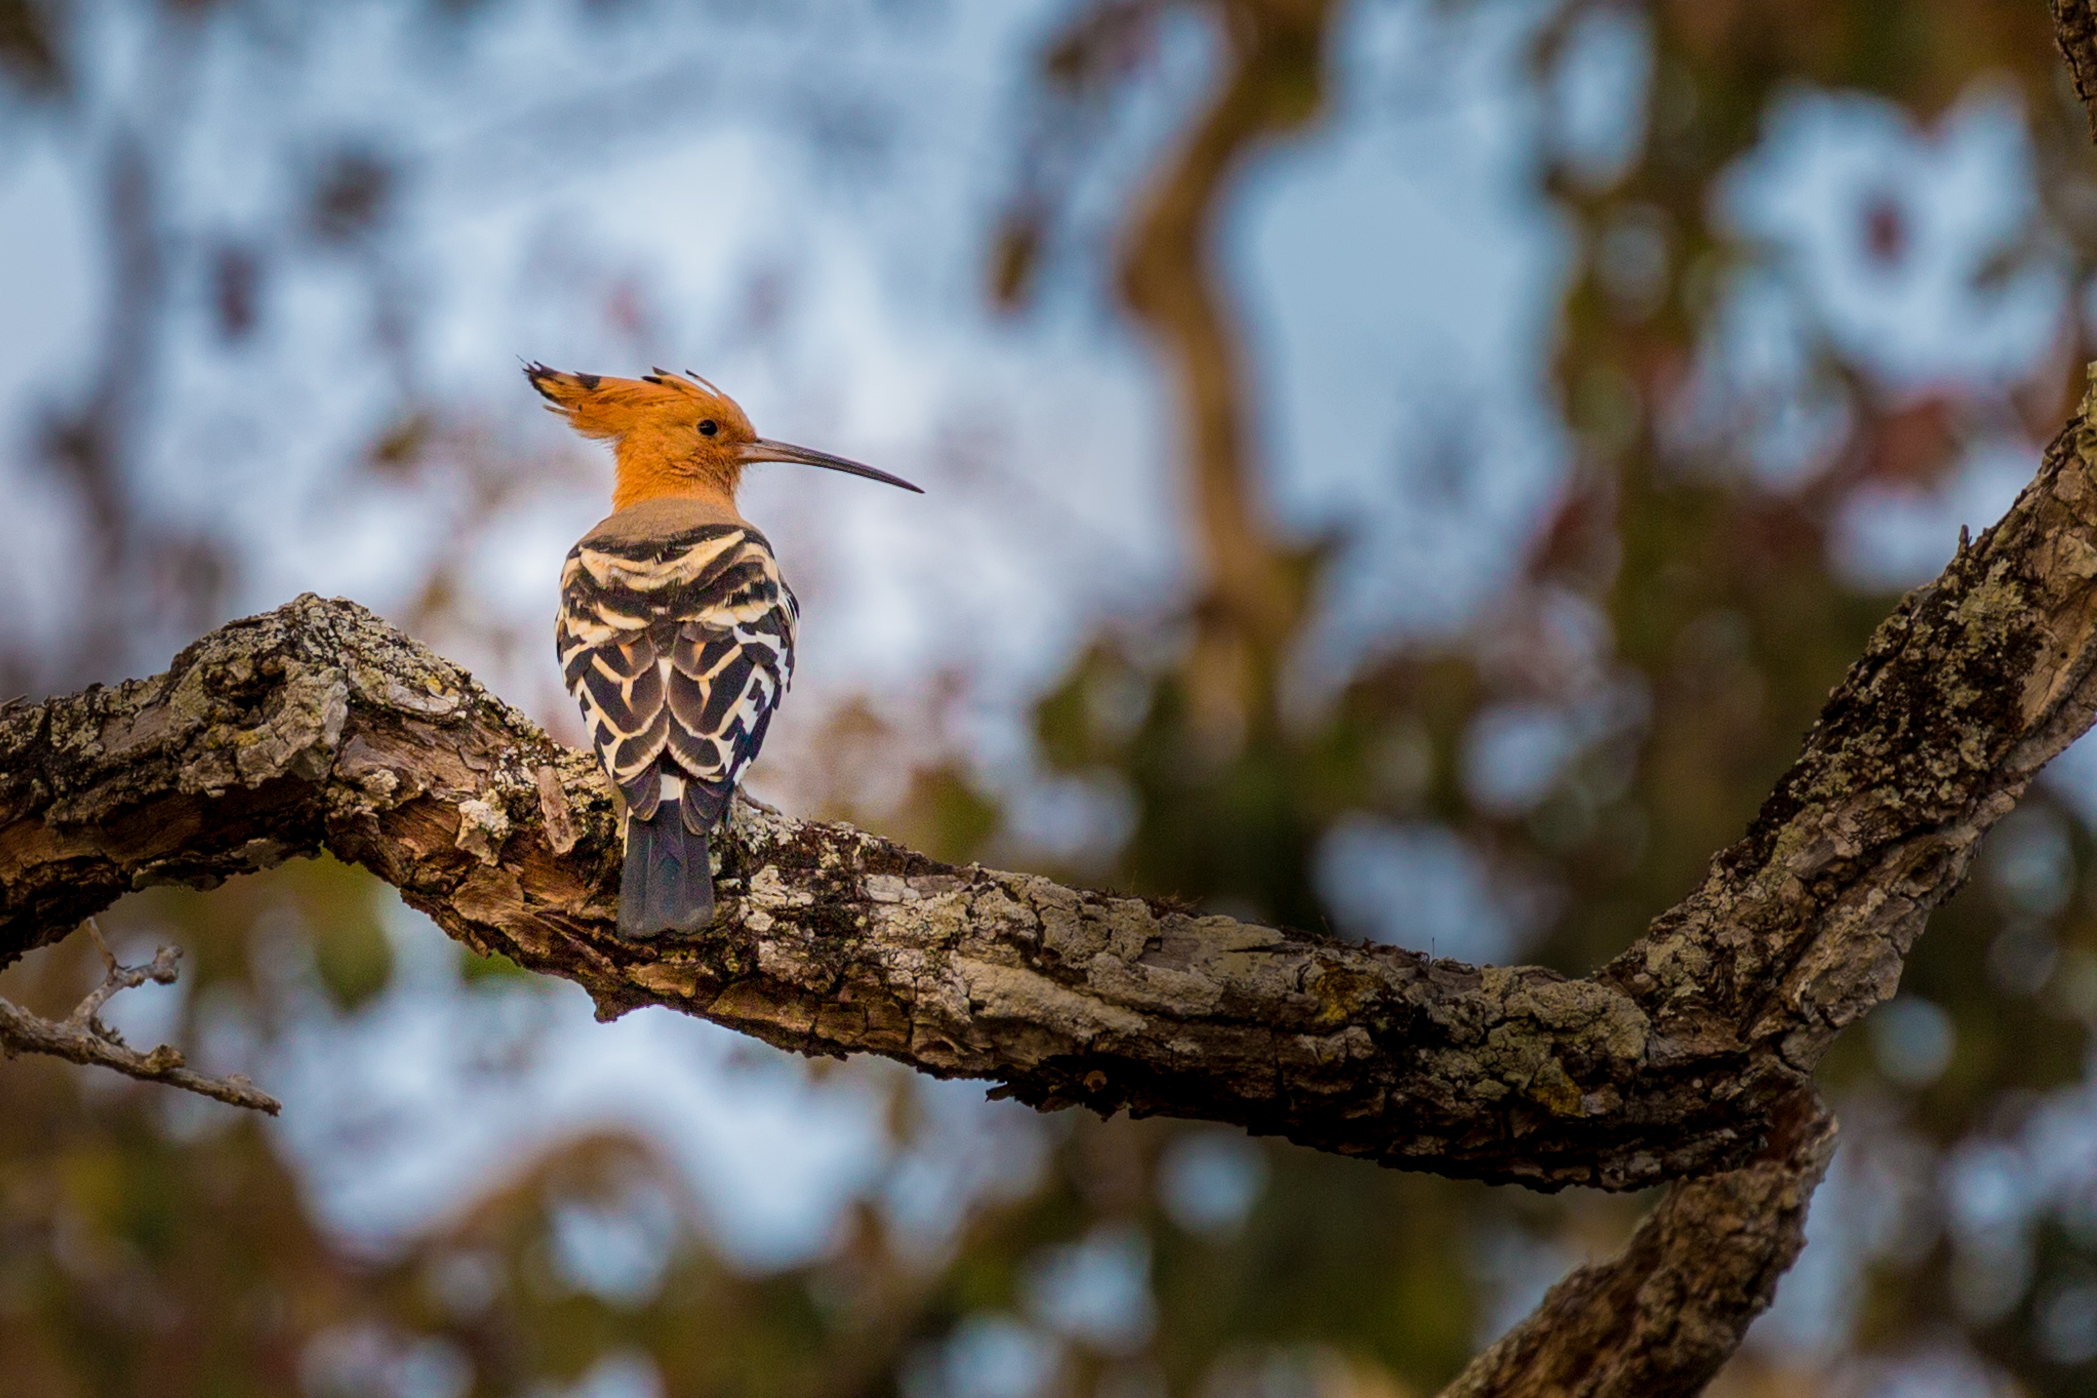 Common Hoopoe (Upopa epops)